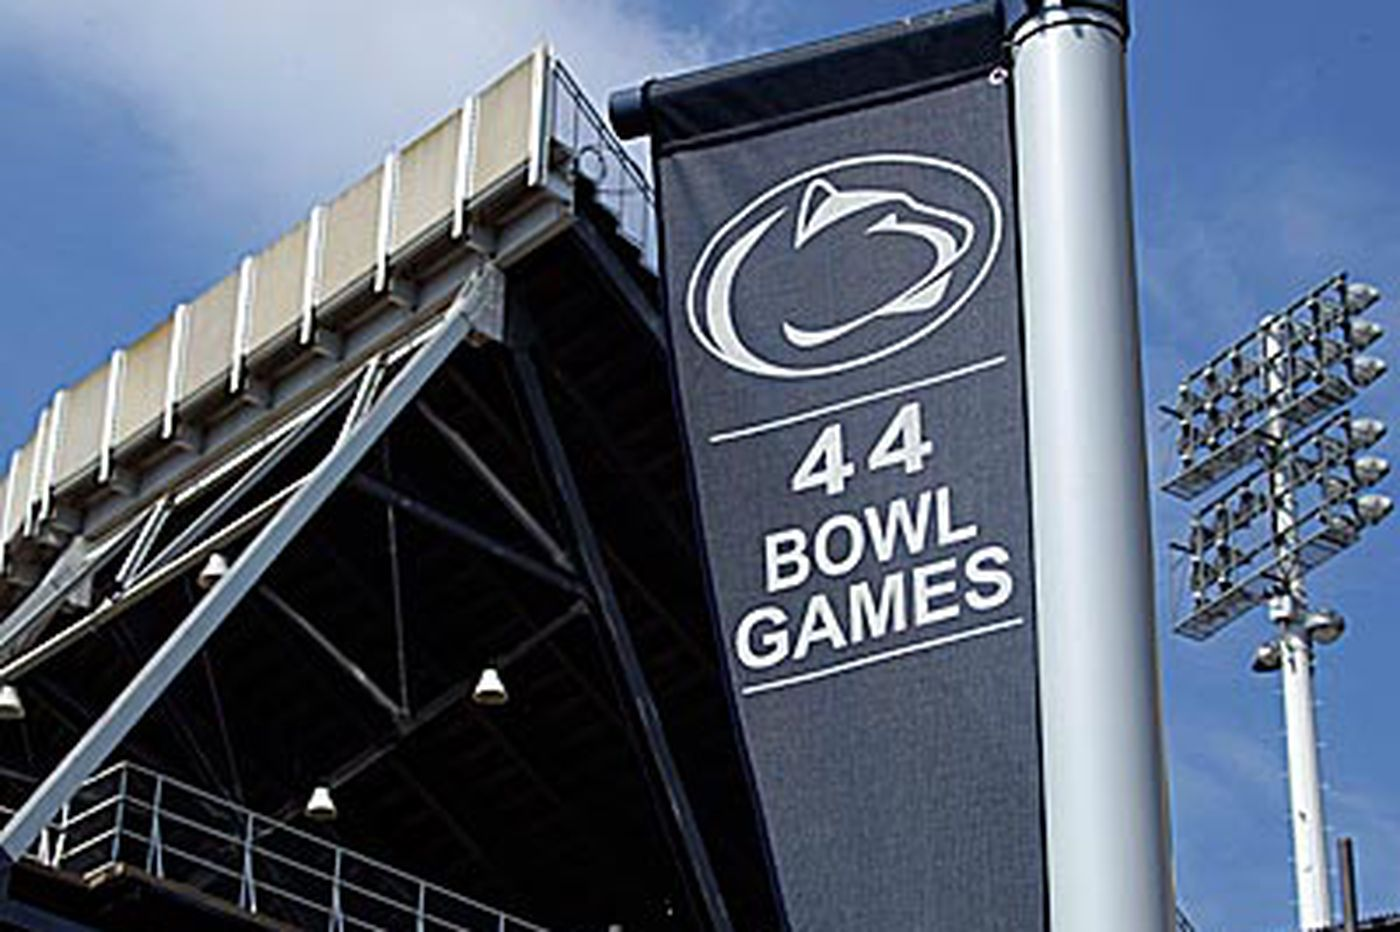 Bill Lyon: Penn St. story a cautionary tale for us all